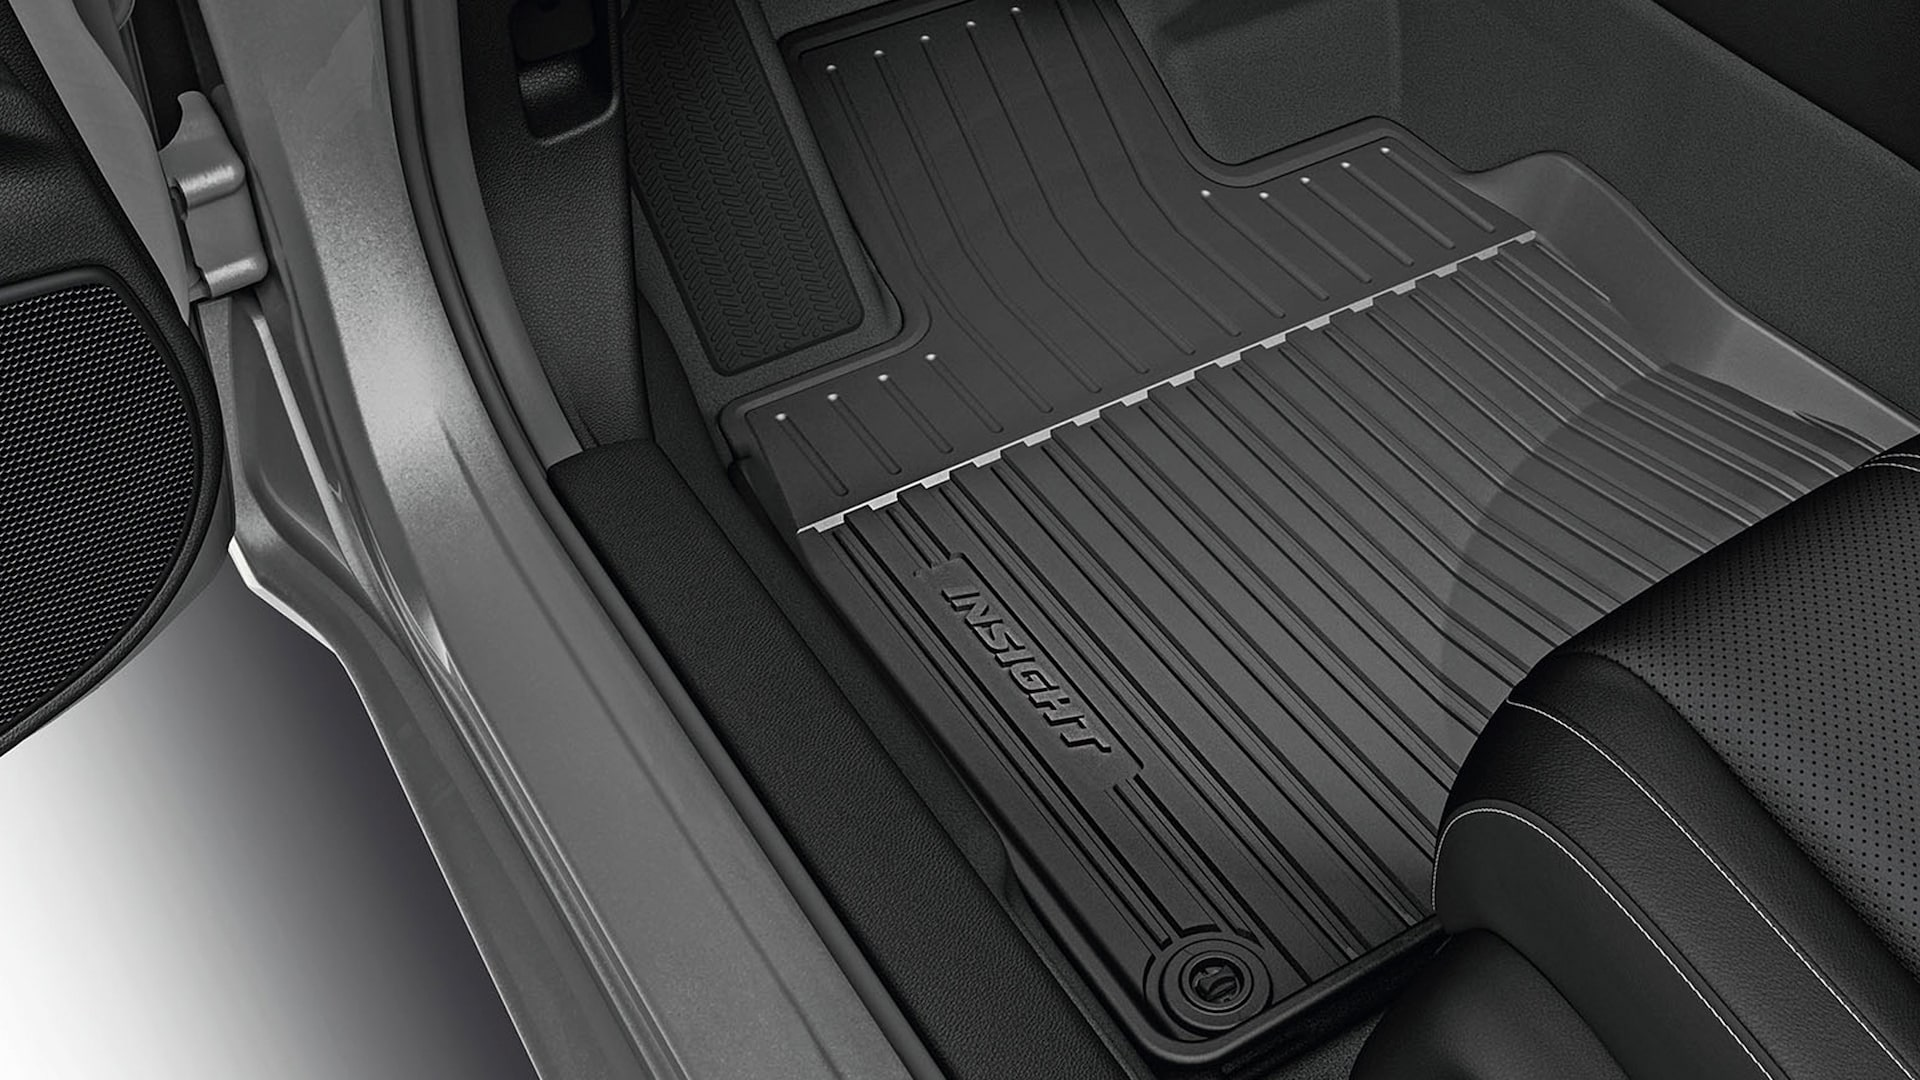 All-season floor mat detail on the 2021 Honda Insight in Lunar Silver Metallic.